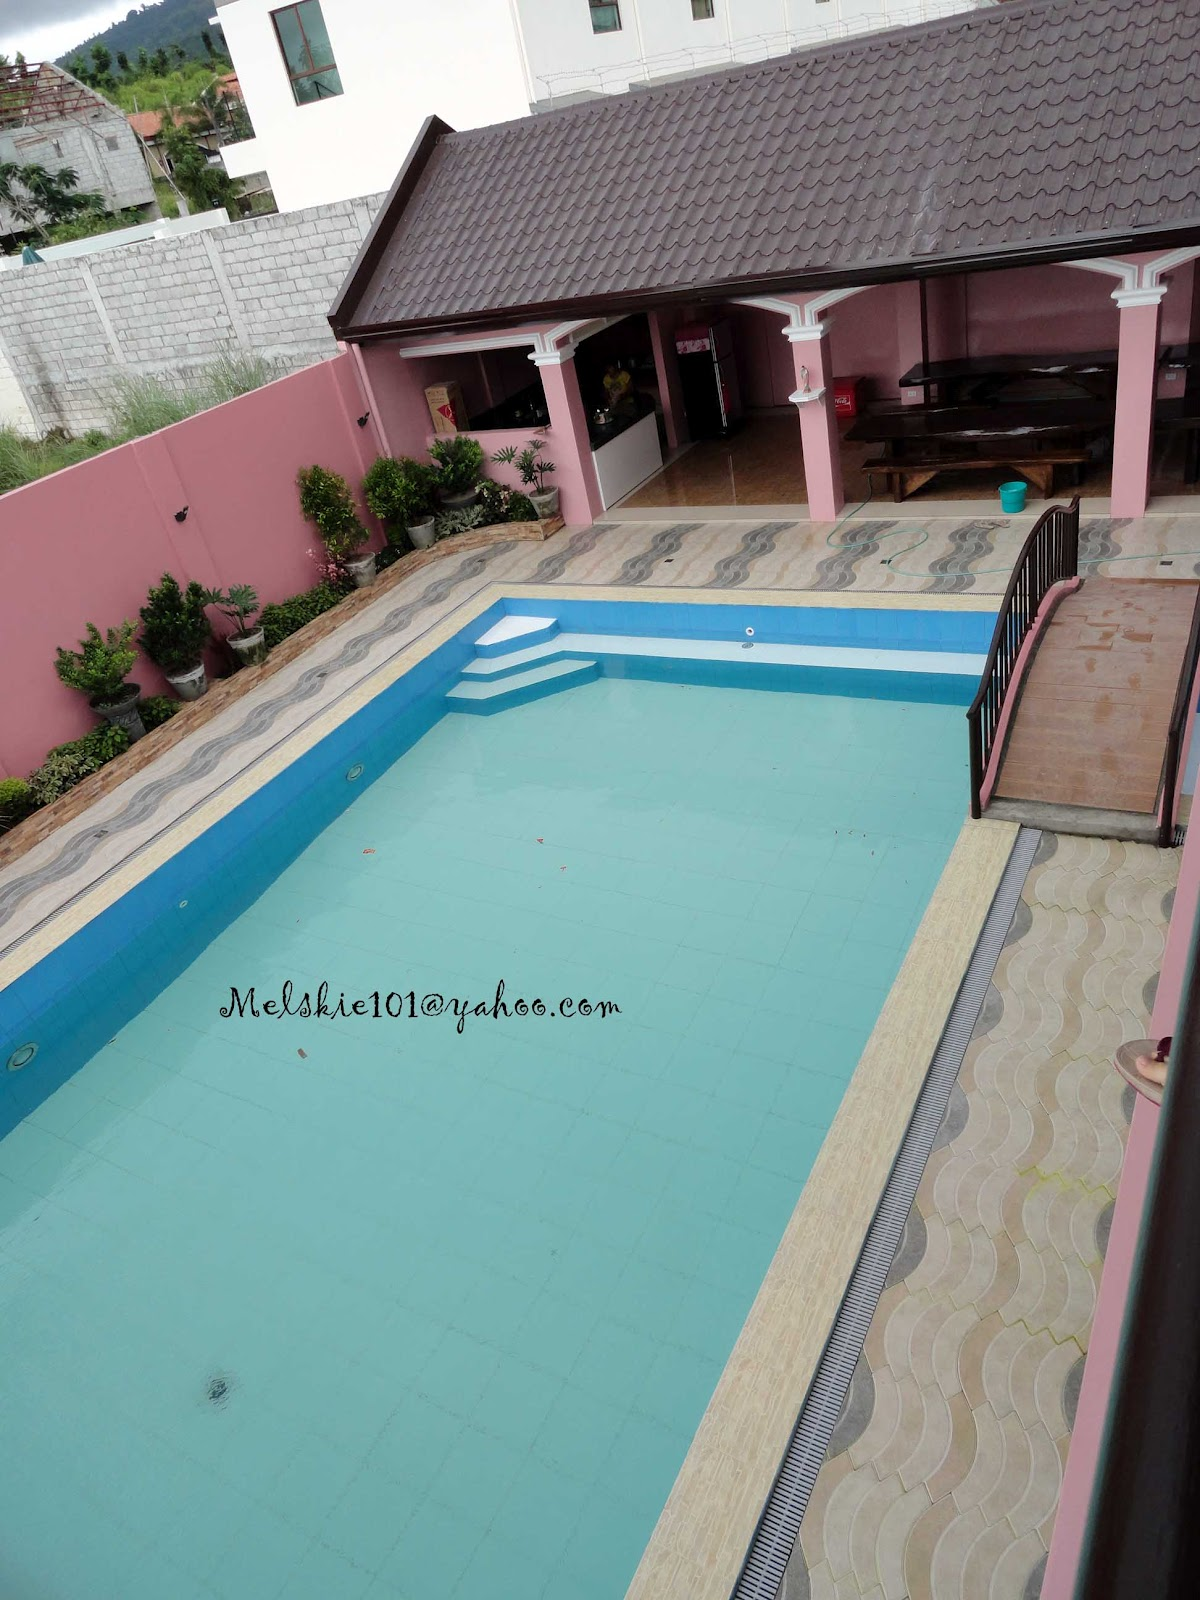 of the newest photos of Private Pool with hot spring in Pansol 2012